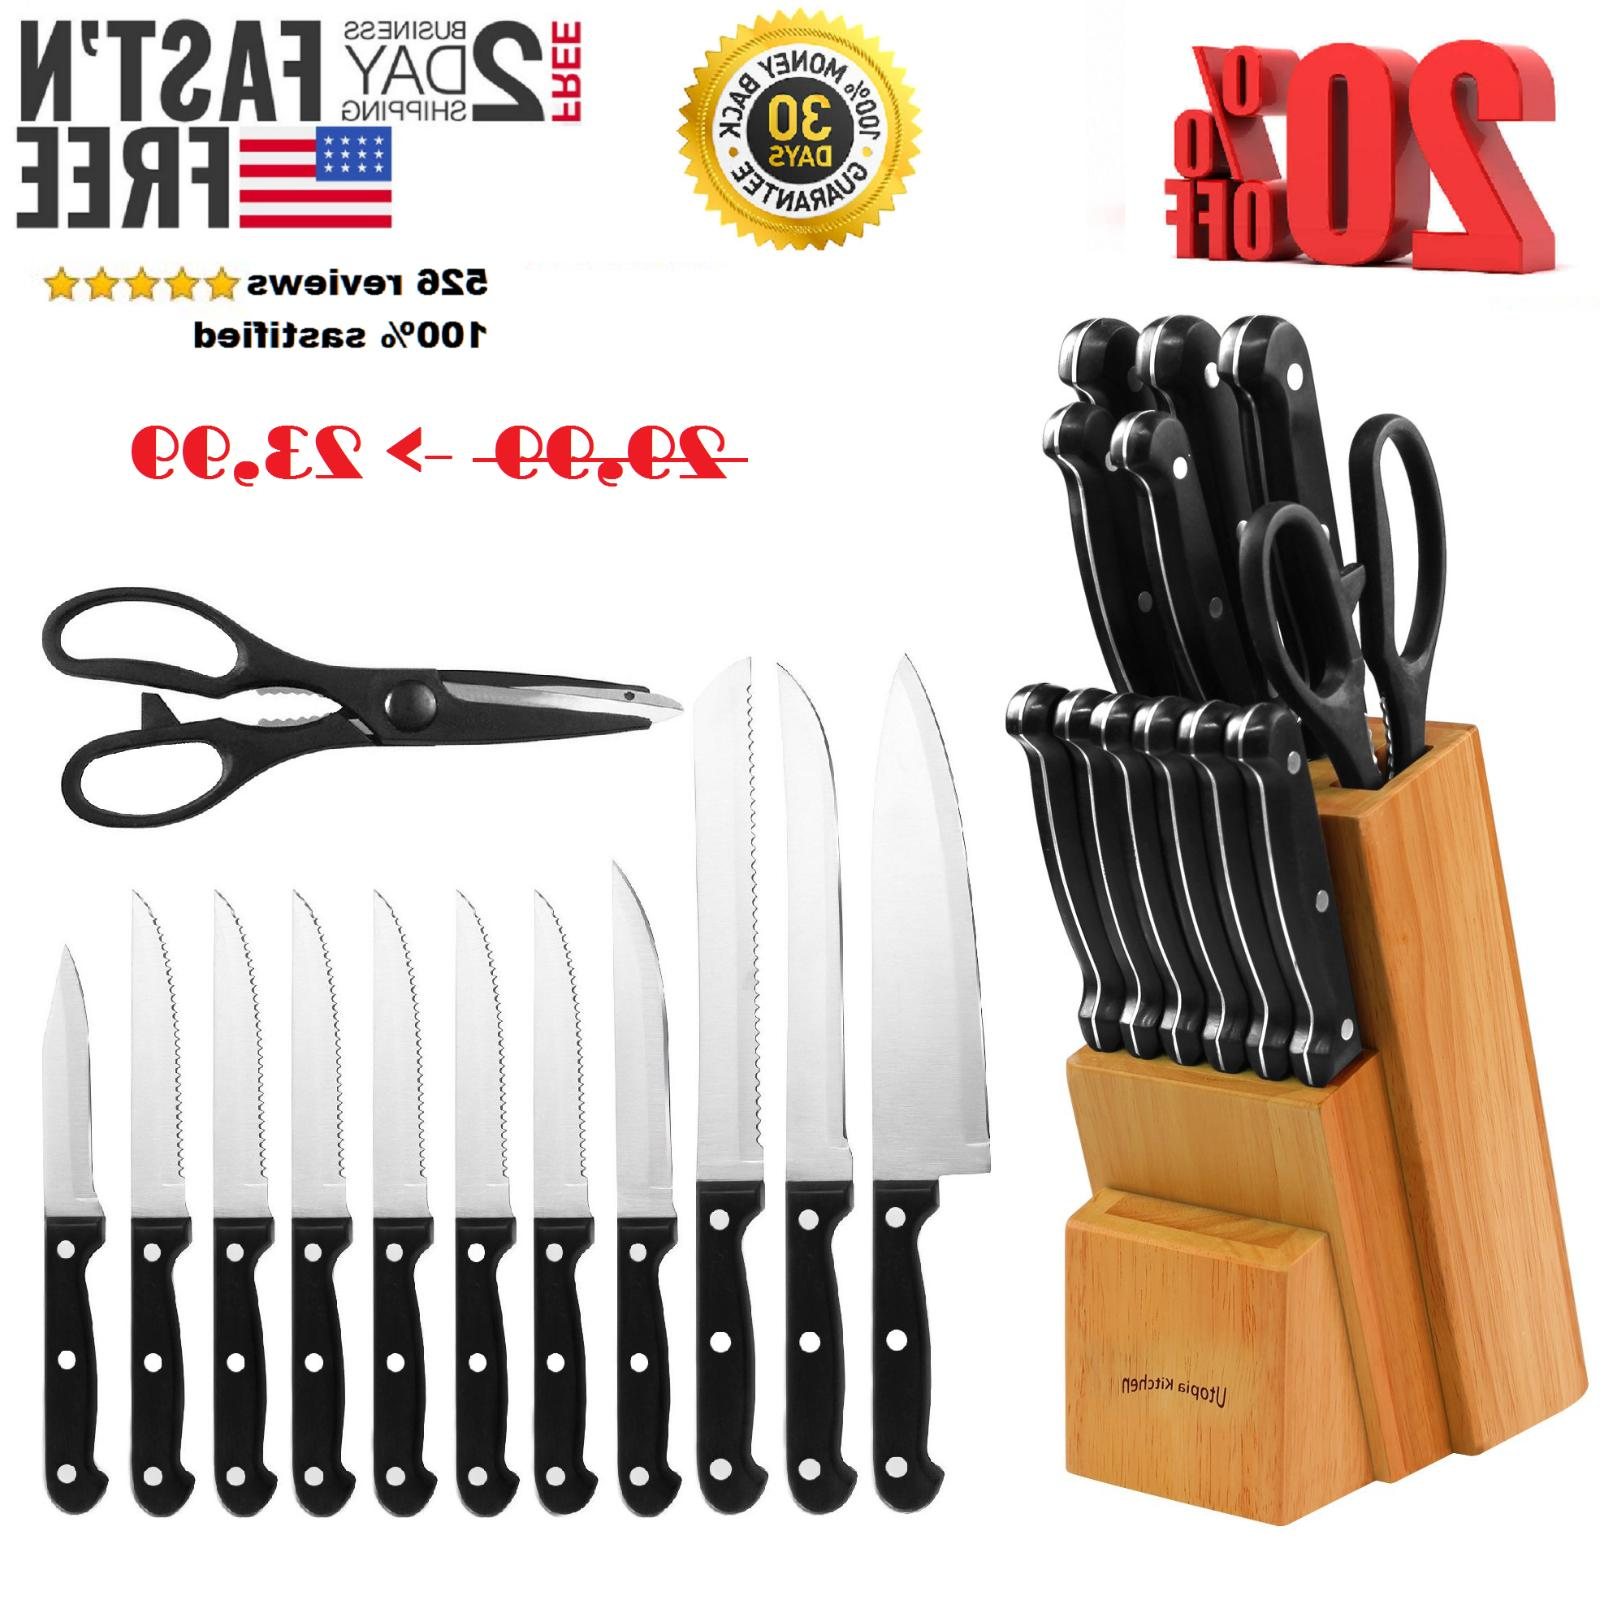 Knife Utopia Block Set Kitchen Sharpening Stainless Steel St